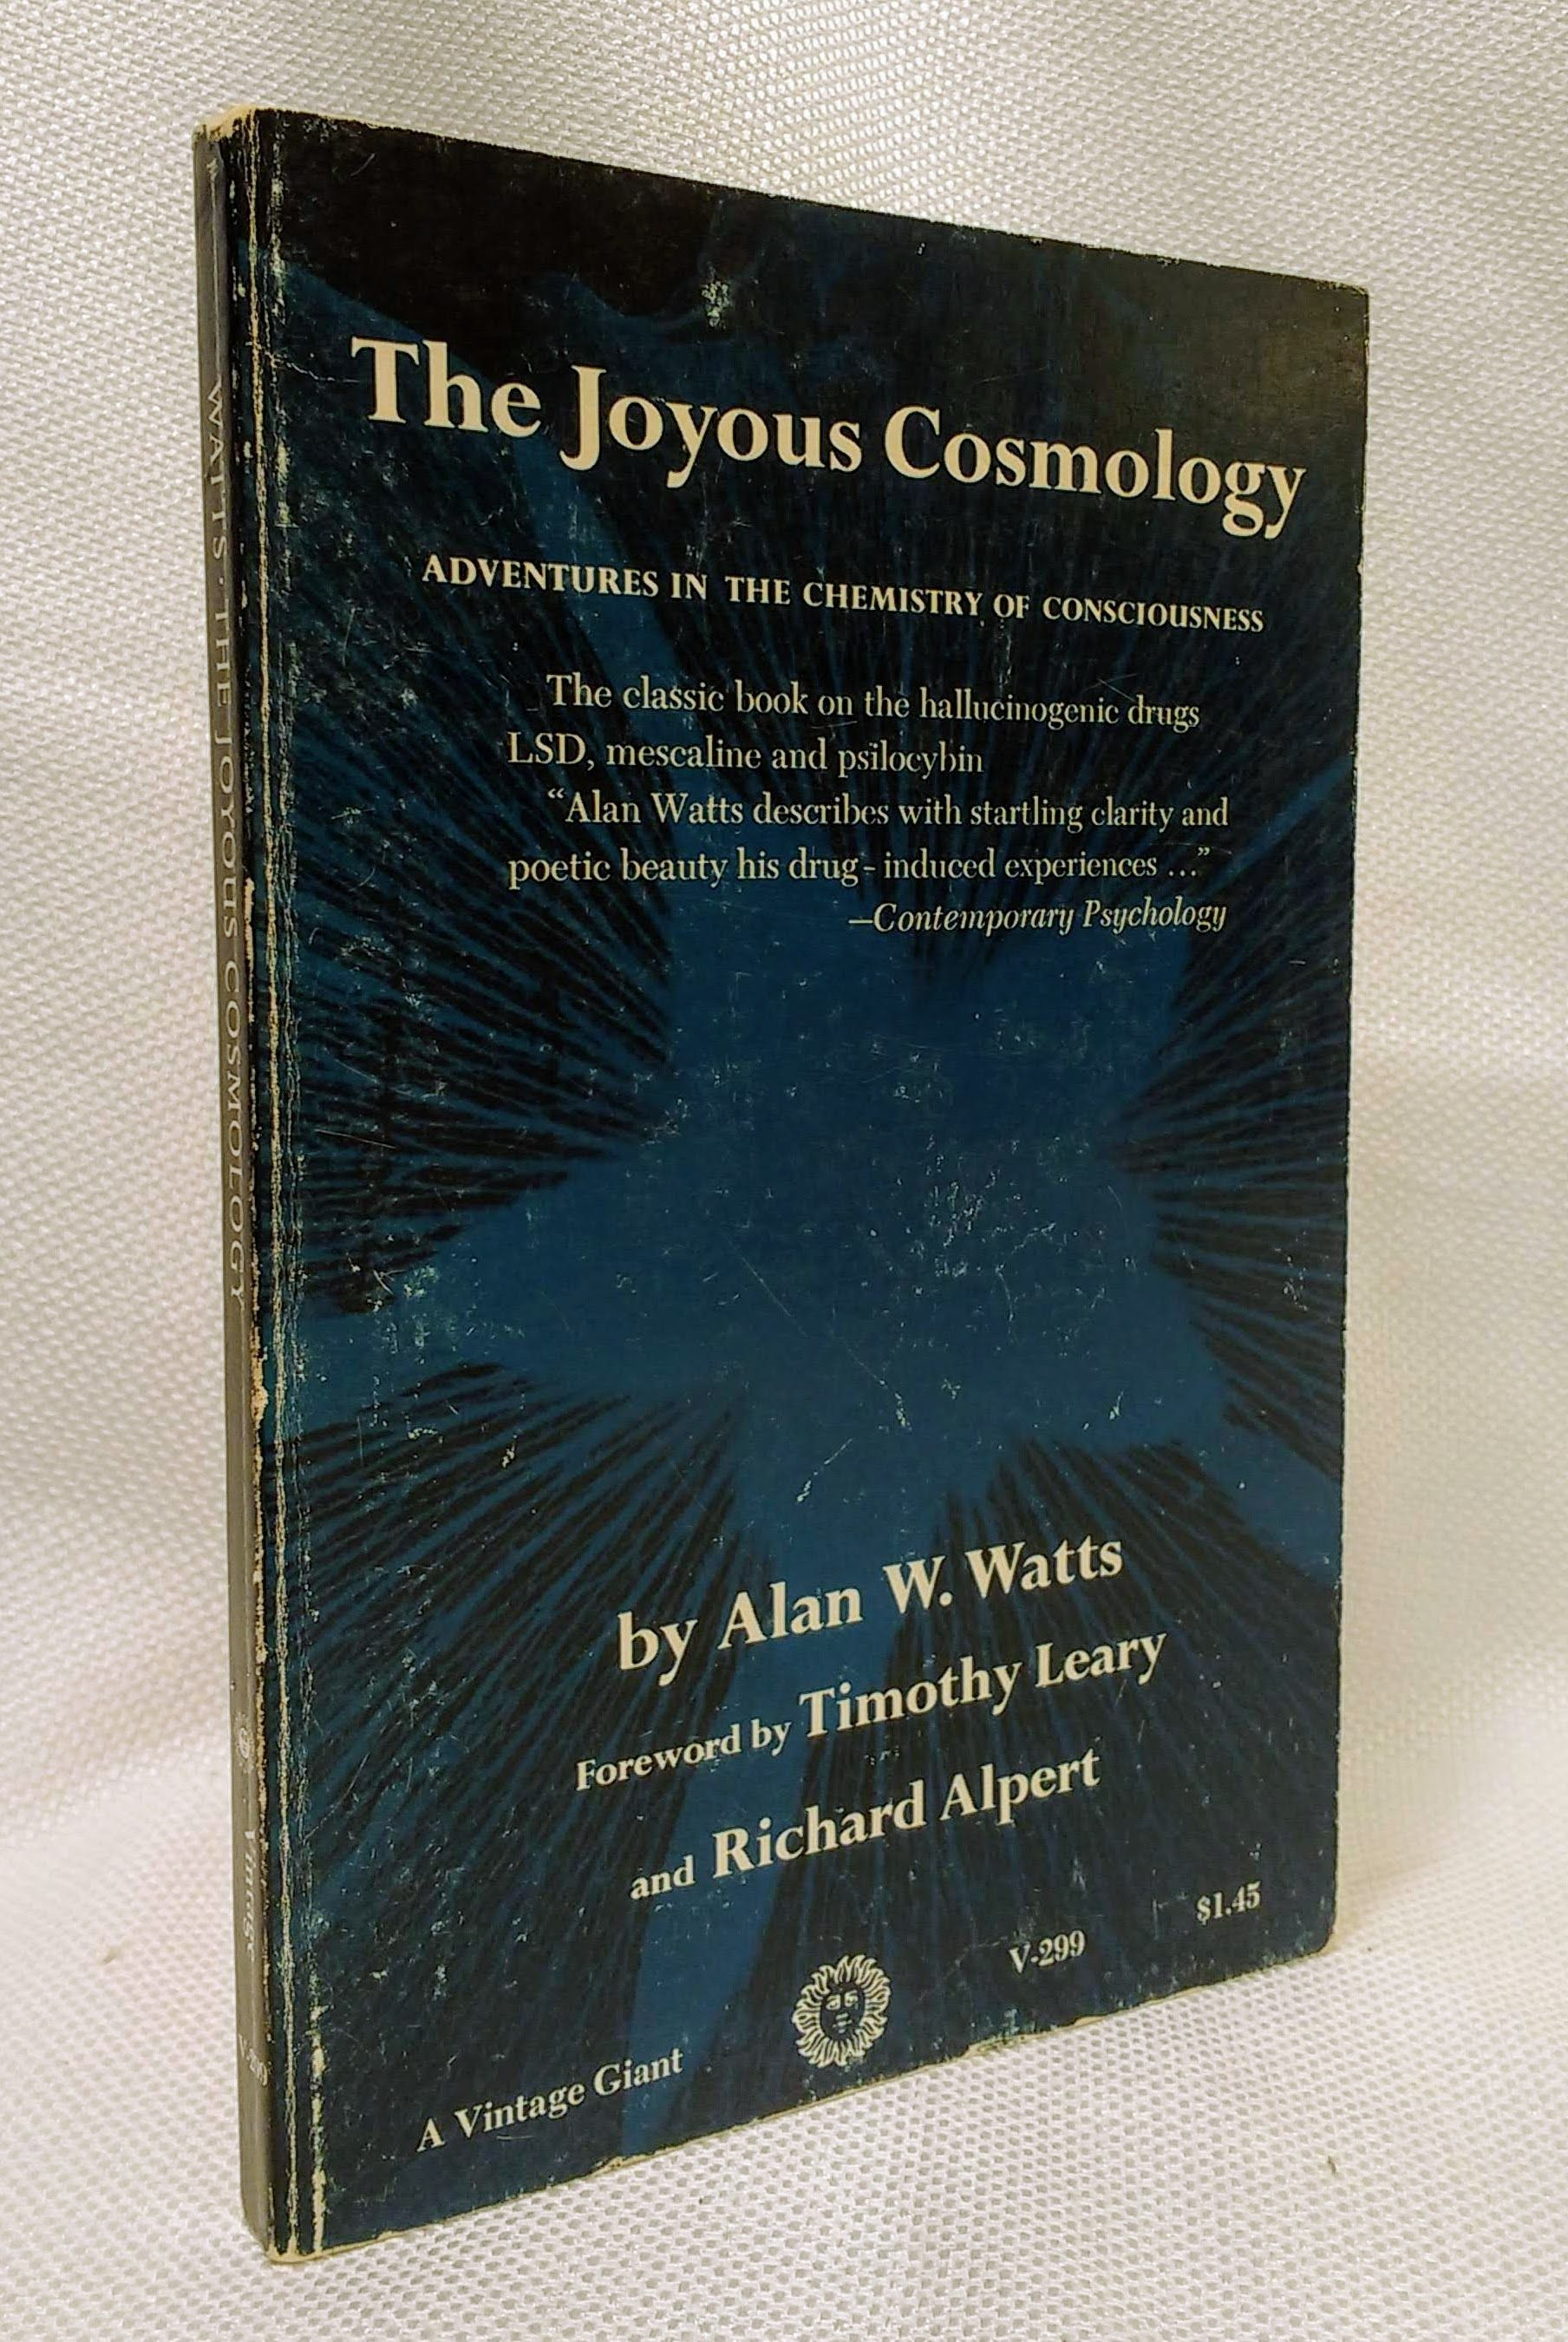 Image for The Joyous Cosmology: Adventures in the Chemistry of Consciousness